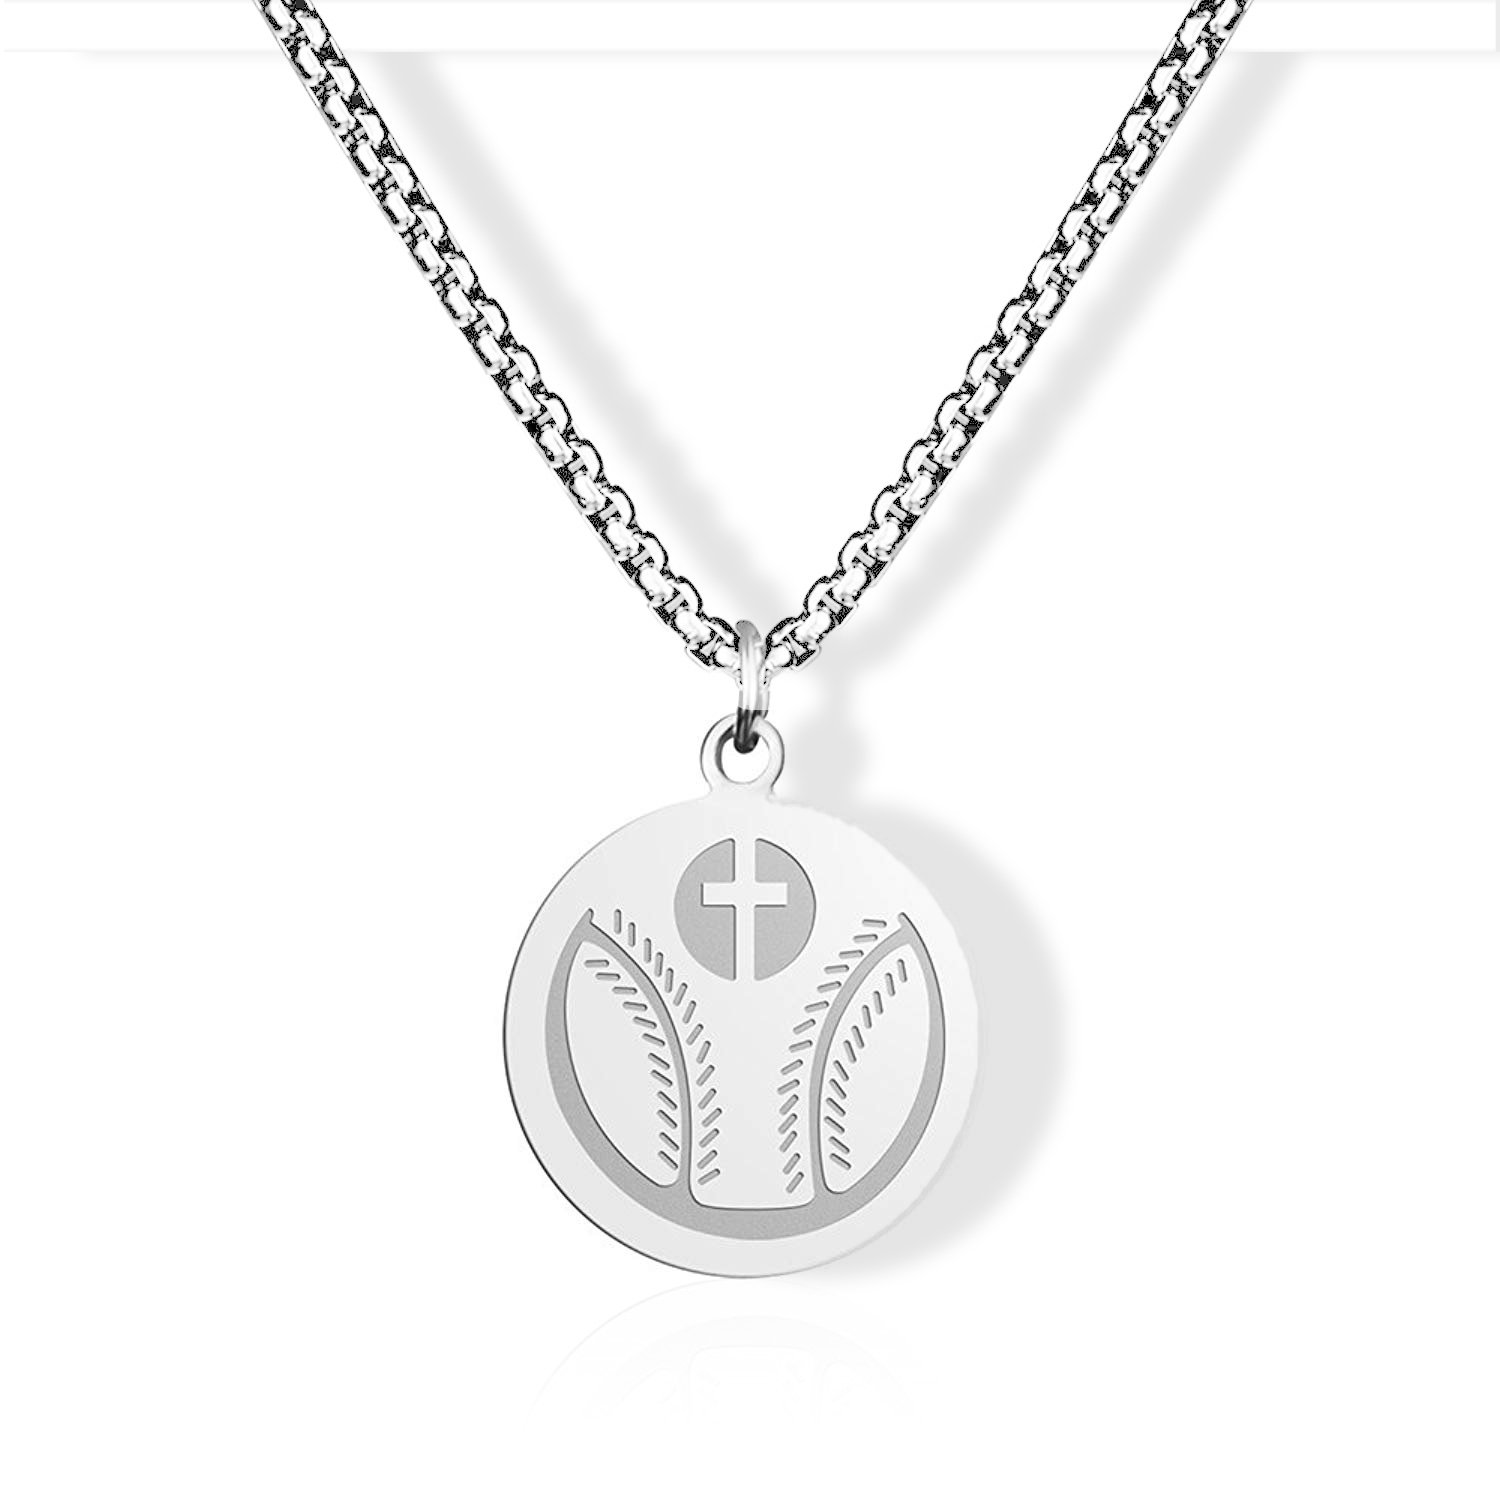 Athletes Cross Necklace by Pendant Sports With an Inspiring Luke 1:37 Bible Verse on Back Available in Basketball Baseball with Bible Verse Pendant Necklace Gift for Son Birthday